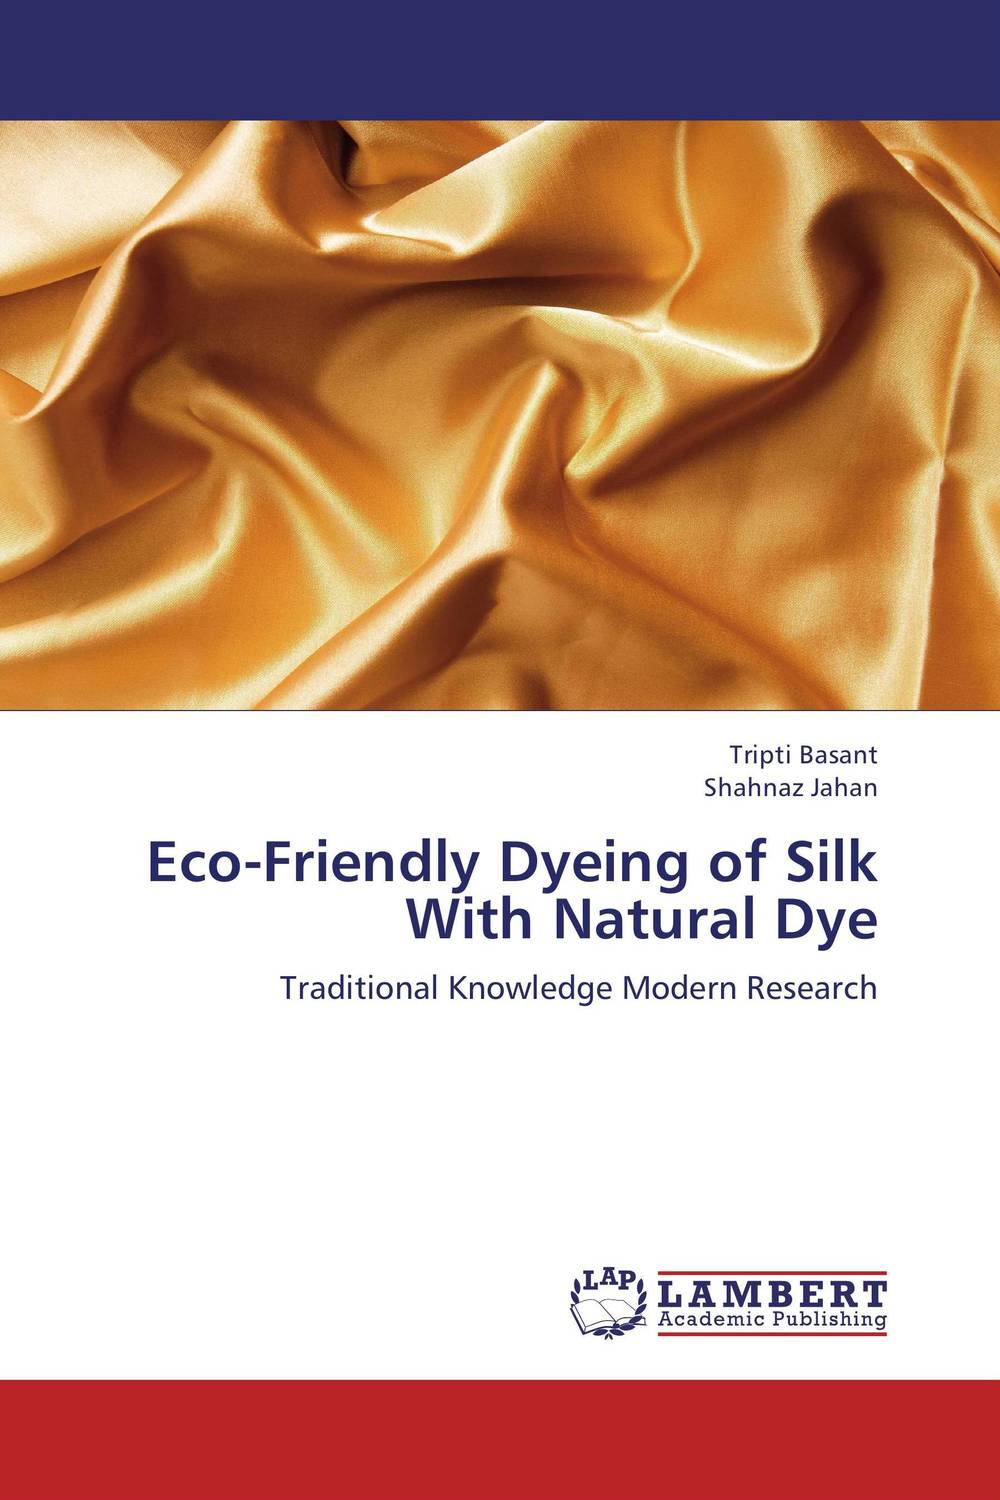 Eco-Friendly Dyeing of Silk With Natural Dye eco friendly dyeing of silk with natural dye